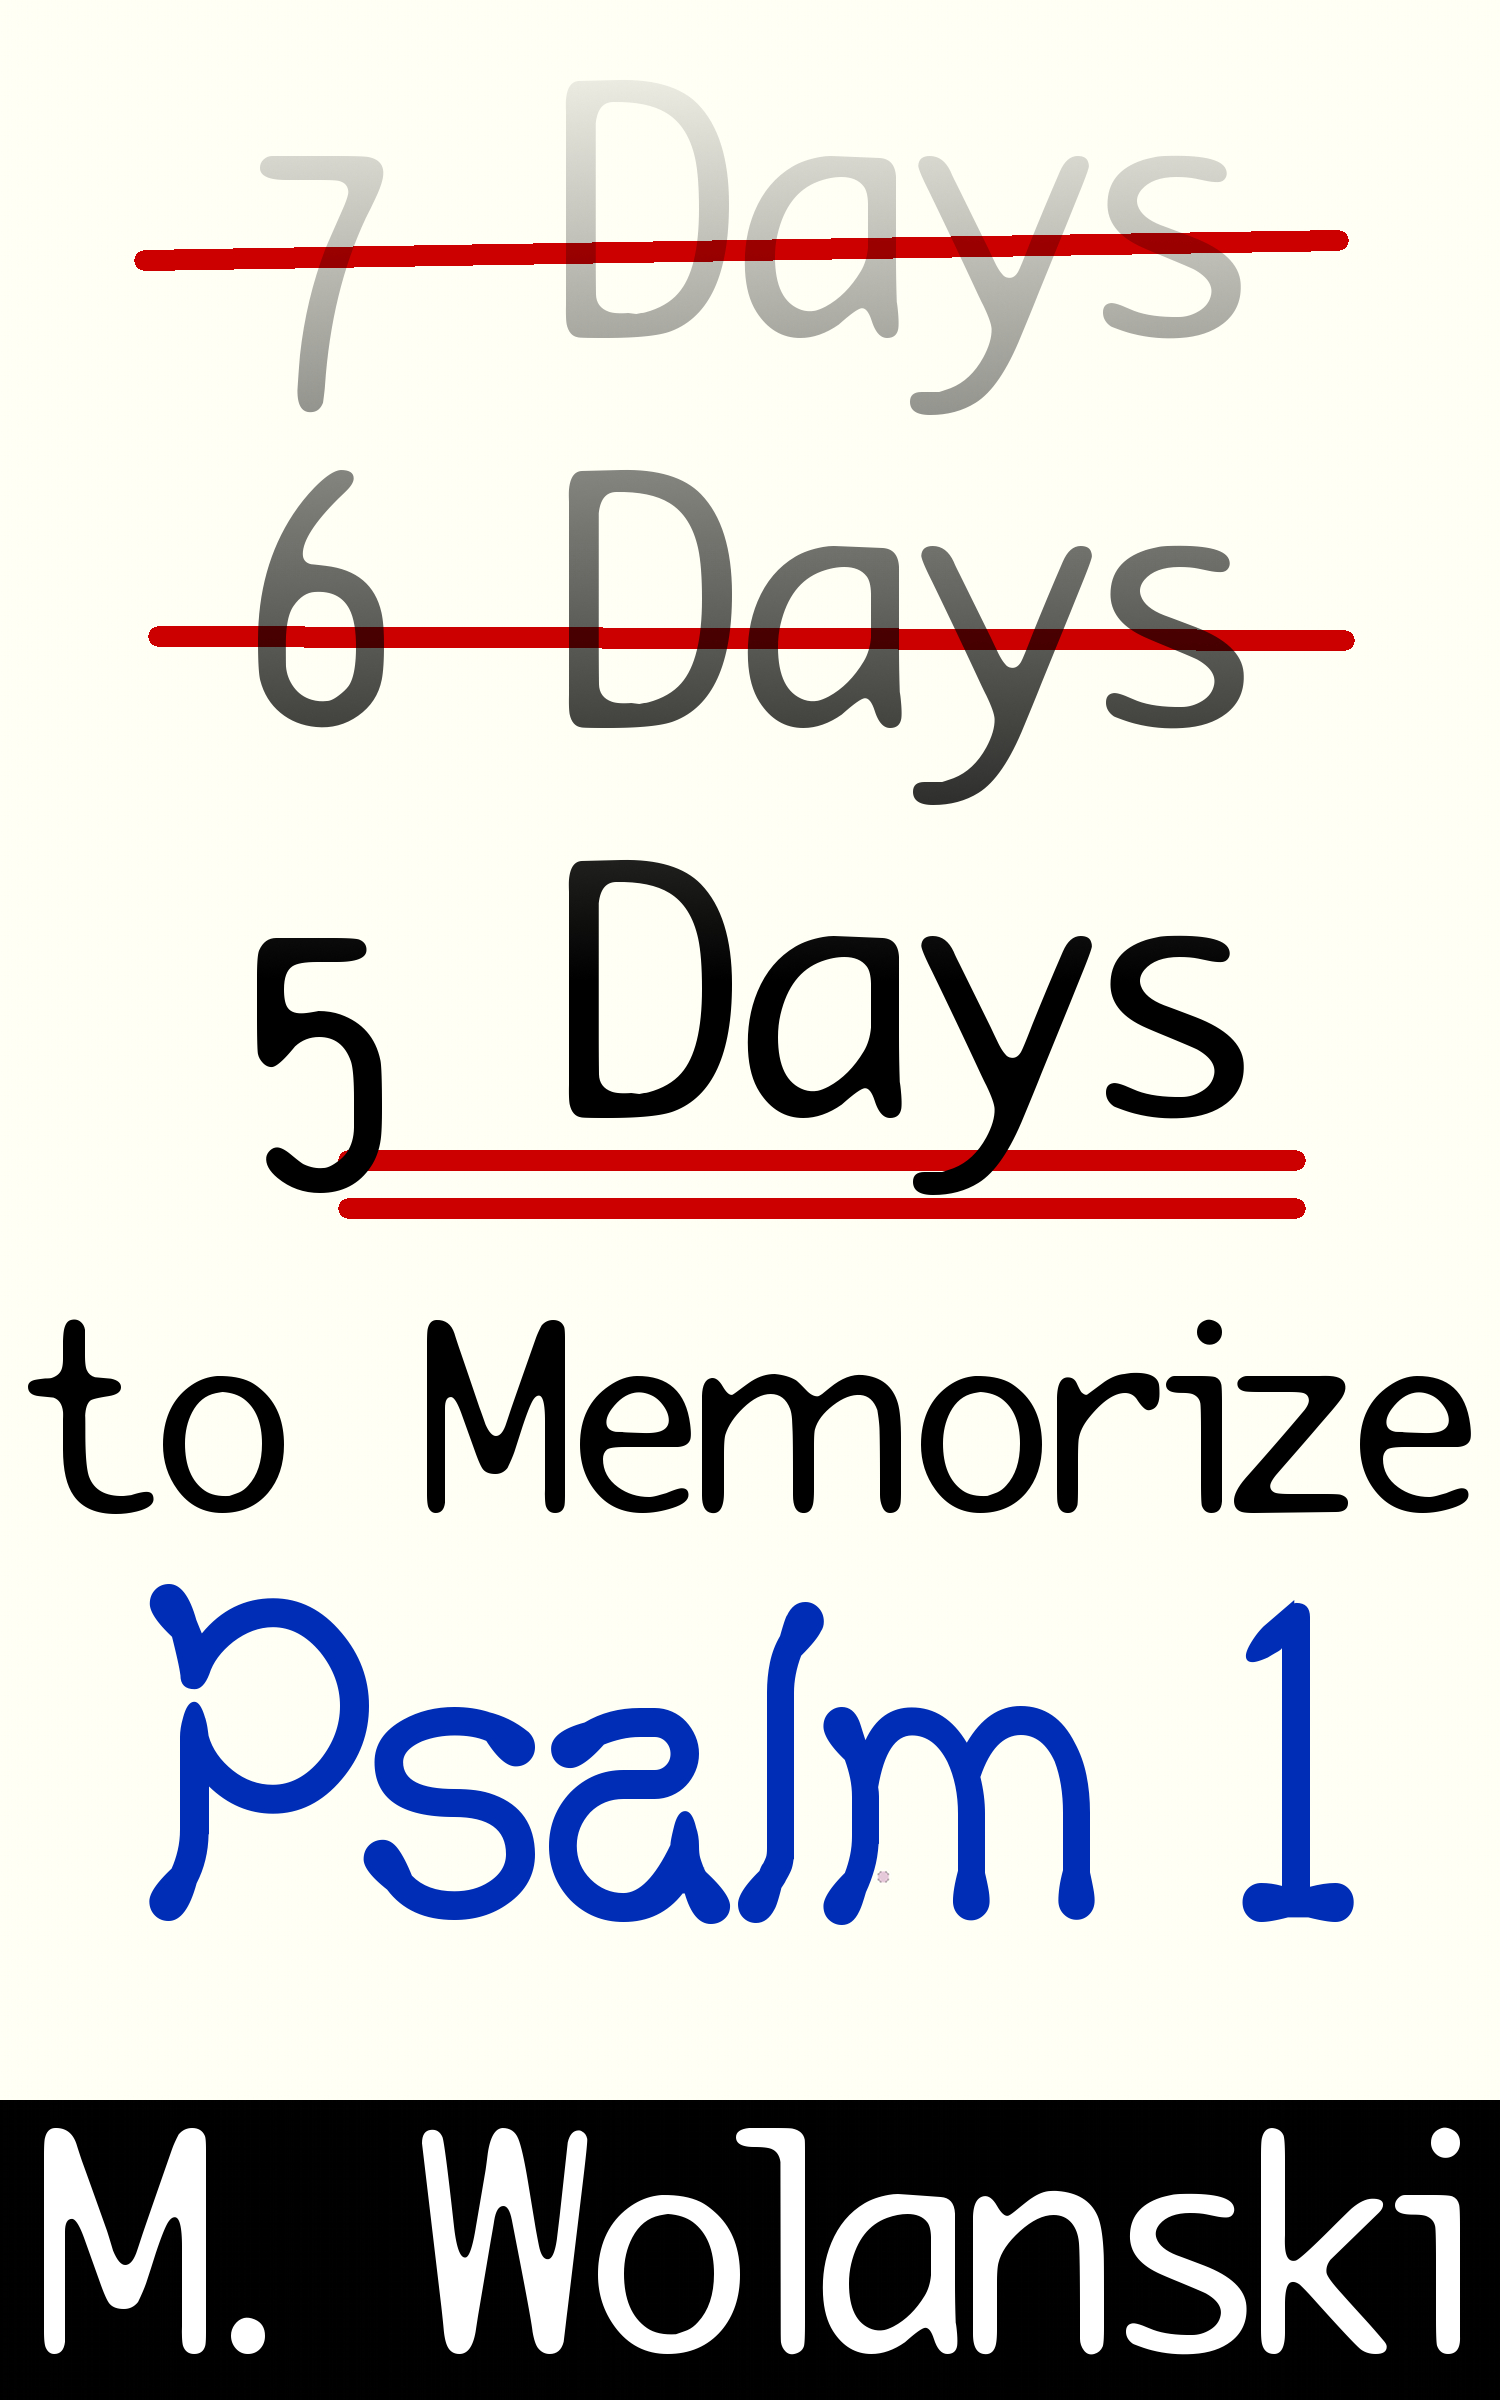 5 Days to Memorize Psalm 1